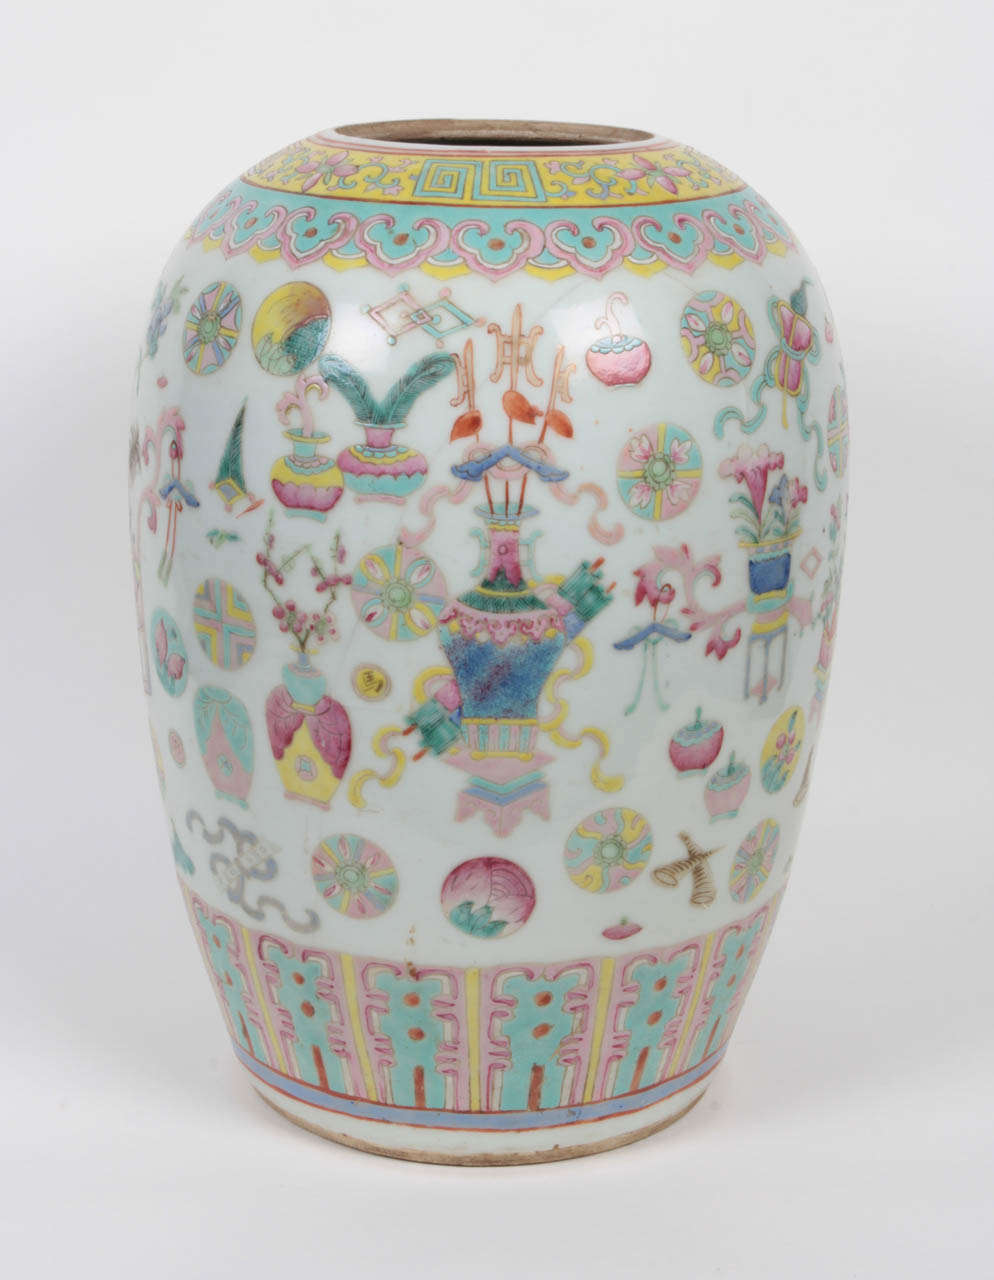 Chinese famille rose jar vase at 1stdibs ceramic melon jar vase in a fine famille rose pattern chinese qing dynasty reviewsmspy